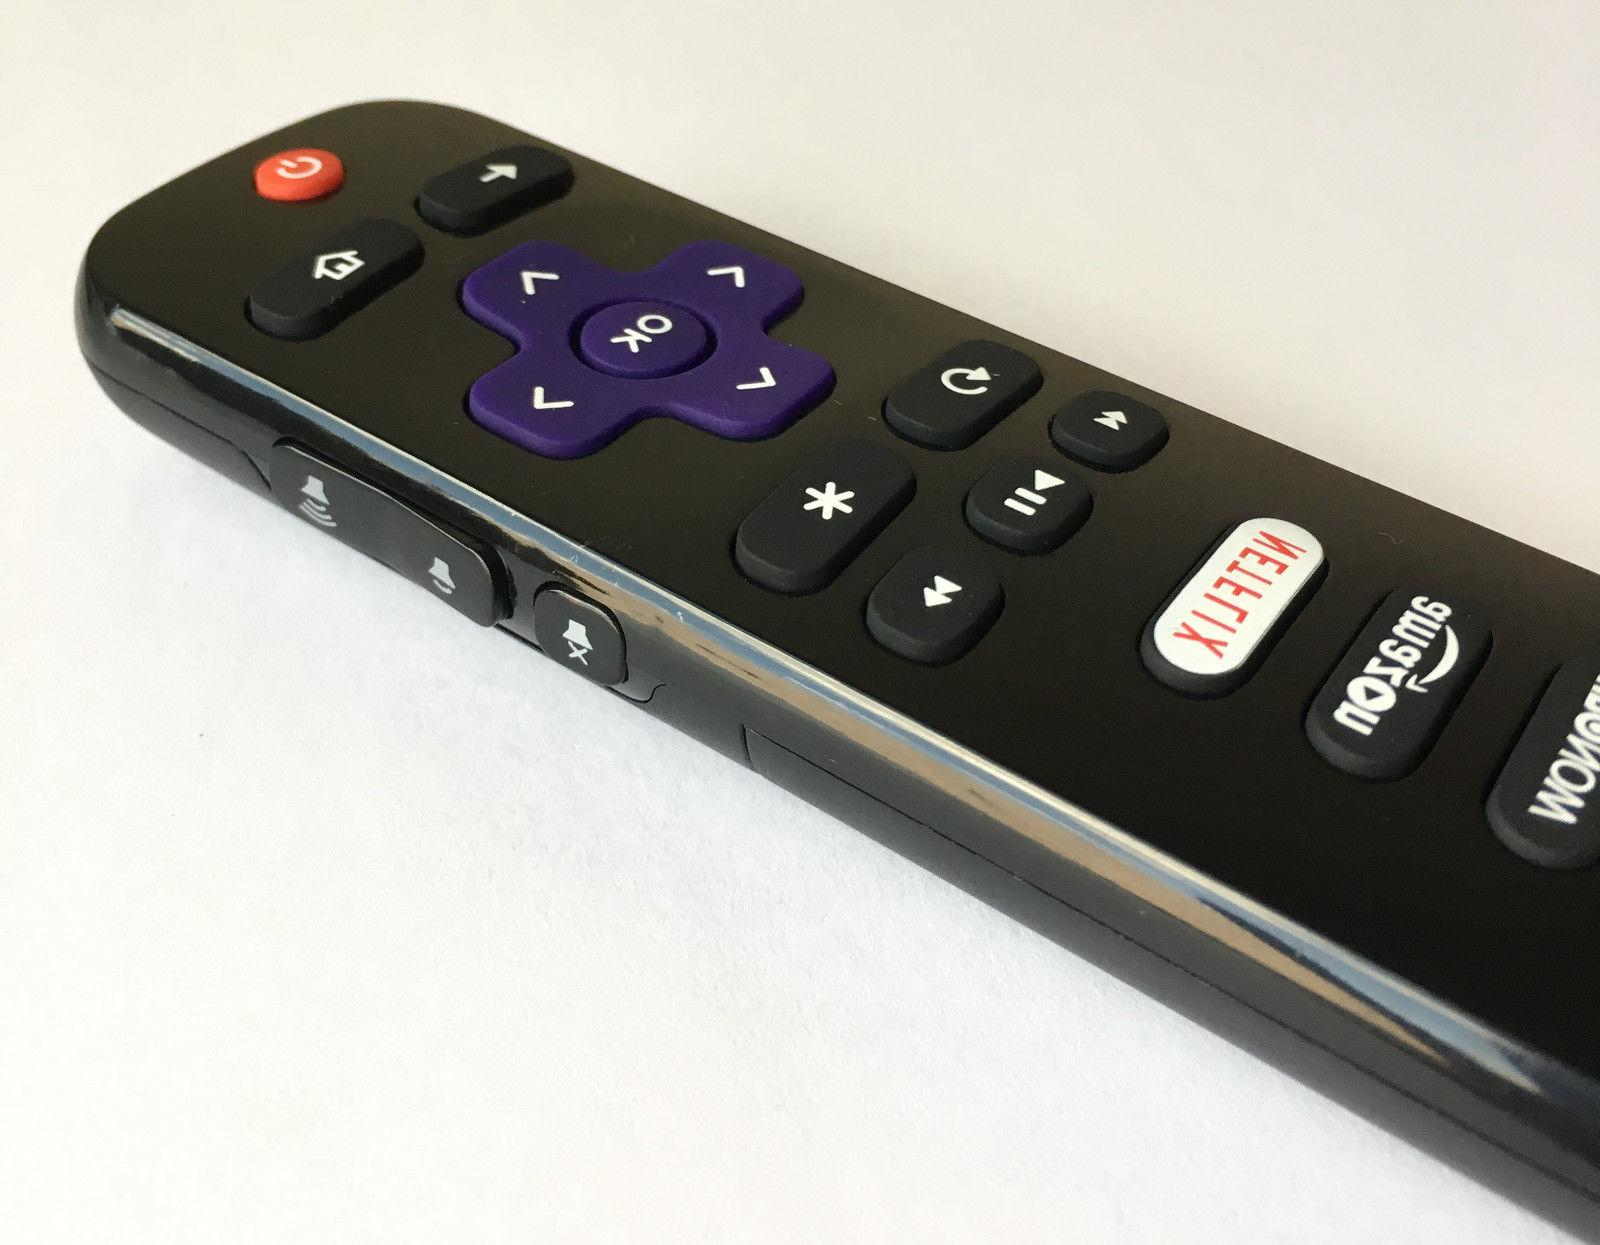 New RC280 Remote for TV with Sling Netflix